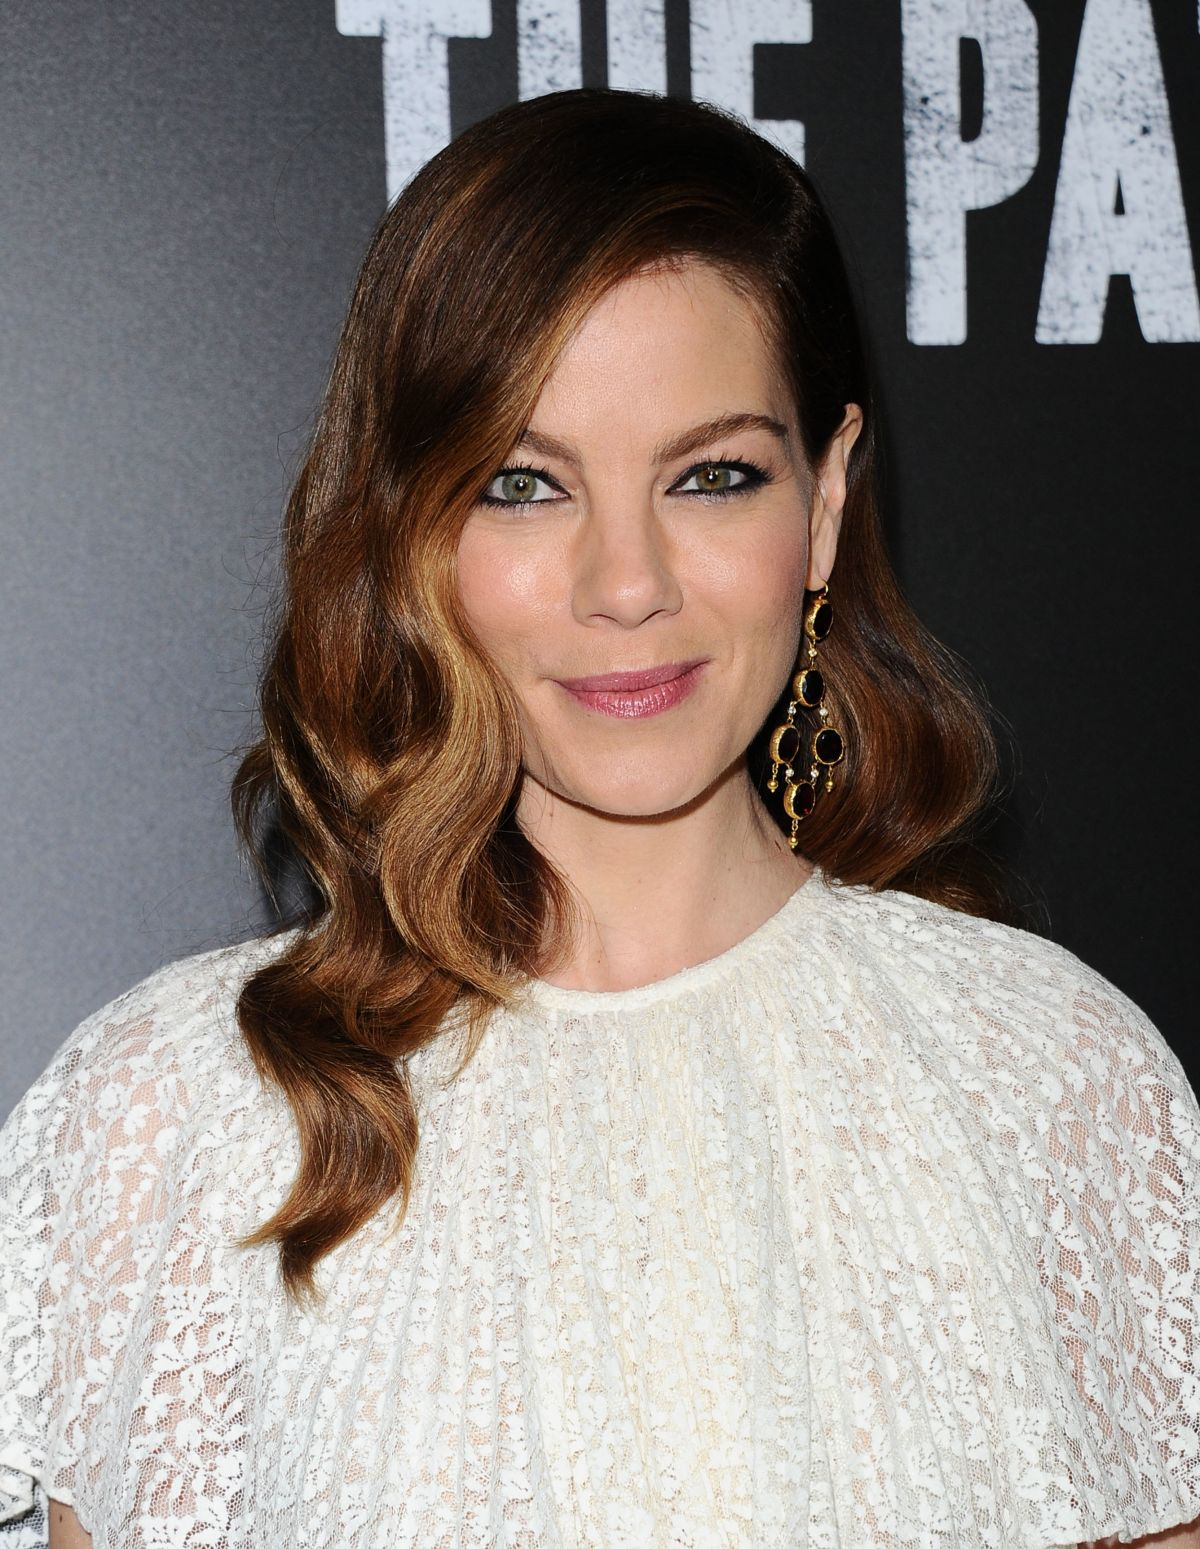 MICHELLE MONAGHAN at